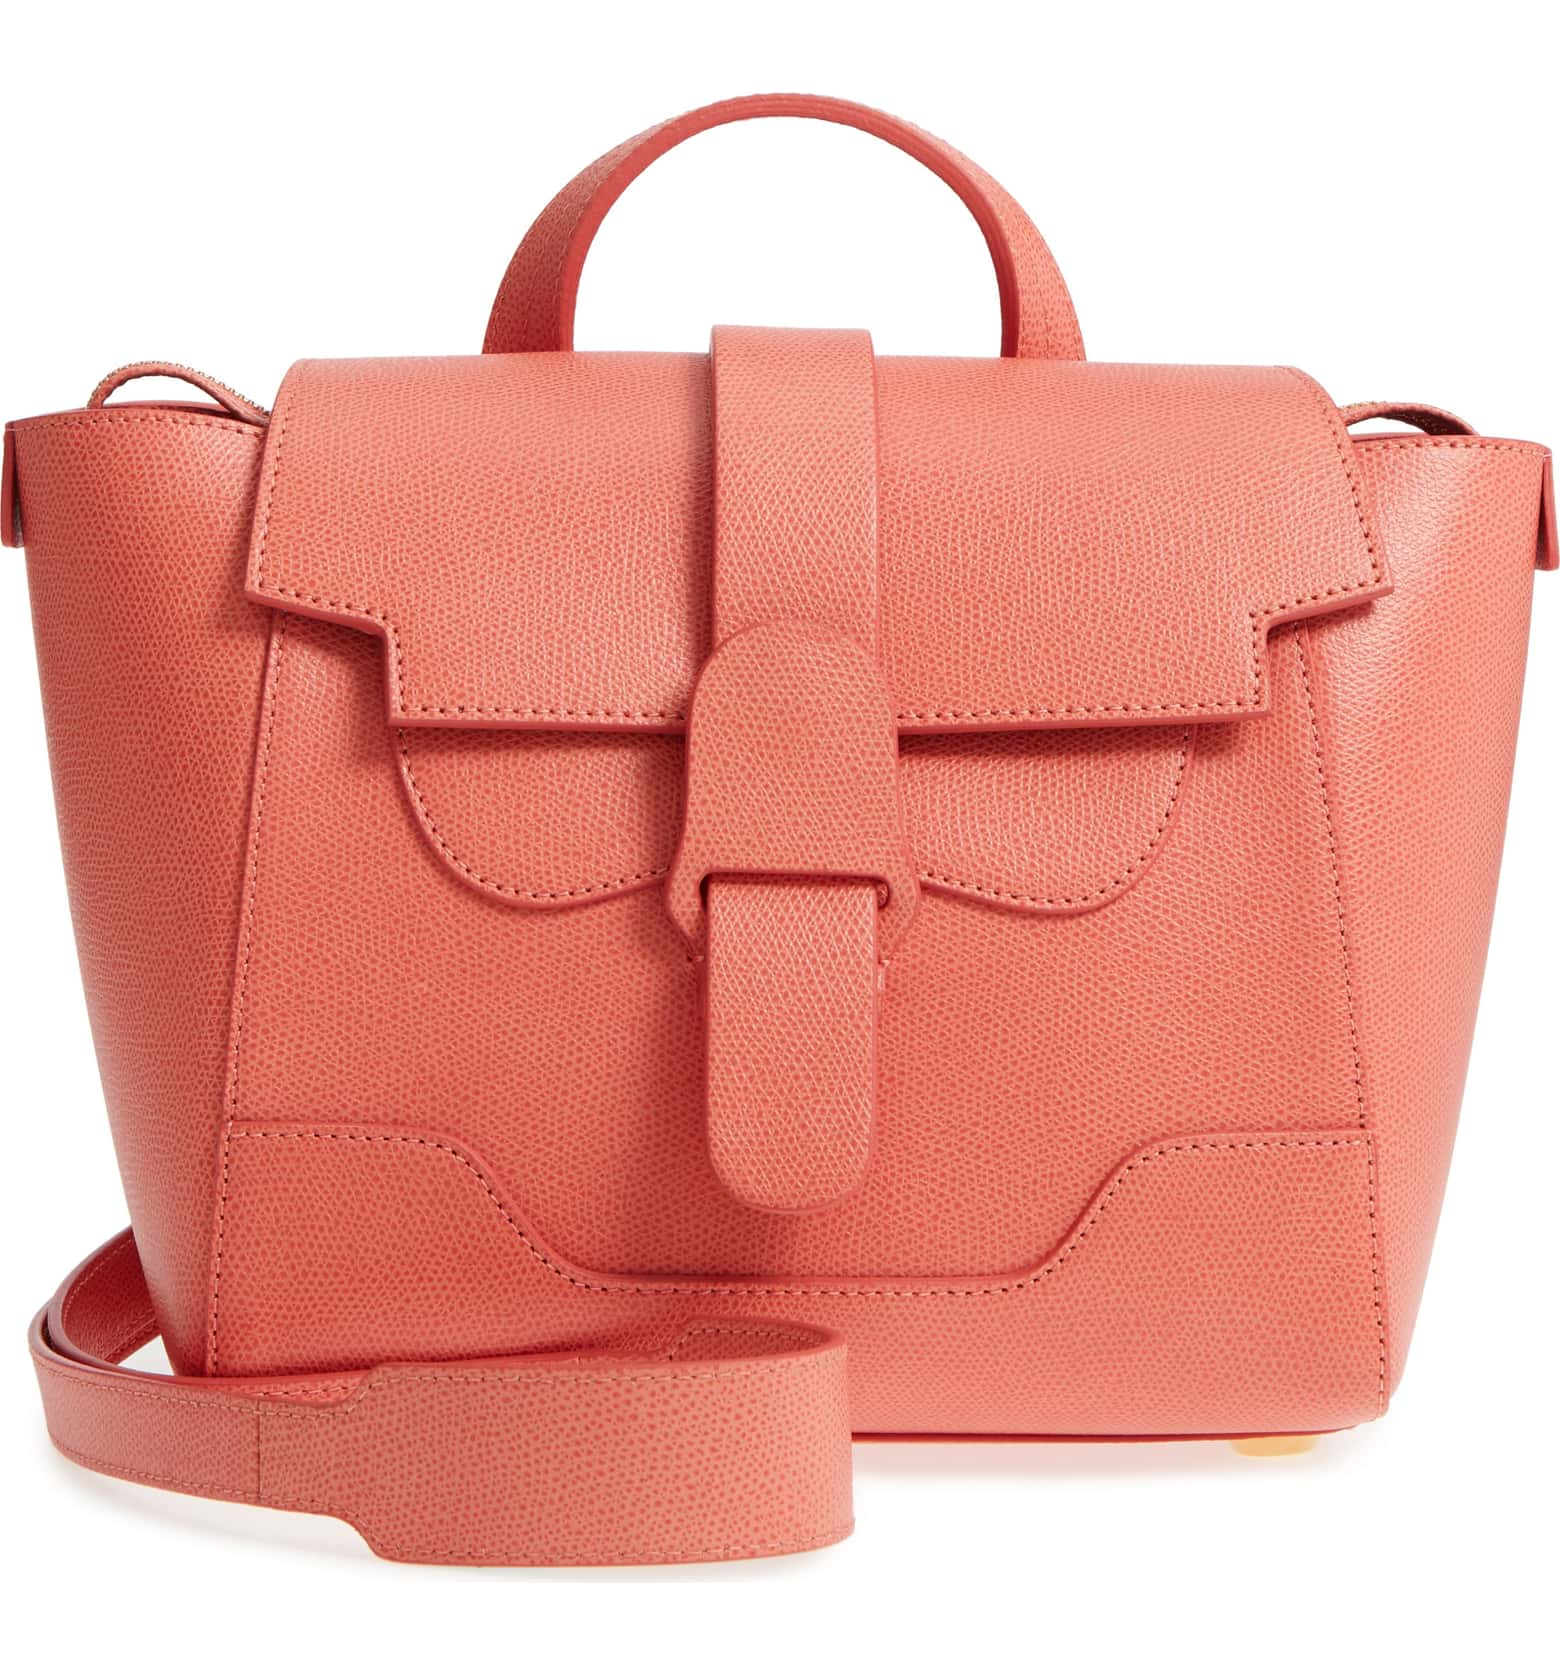 Lovely Living Coral accessories to celebrate the 2019 Pantone color of the year: Mini maestra coral satchel at Nordstrom